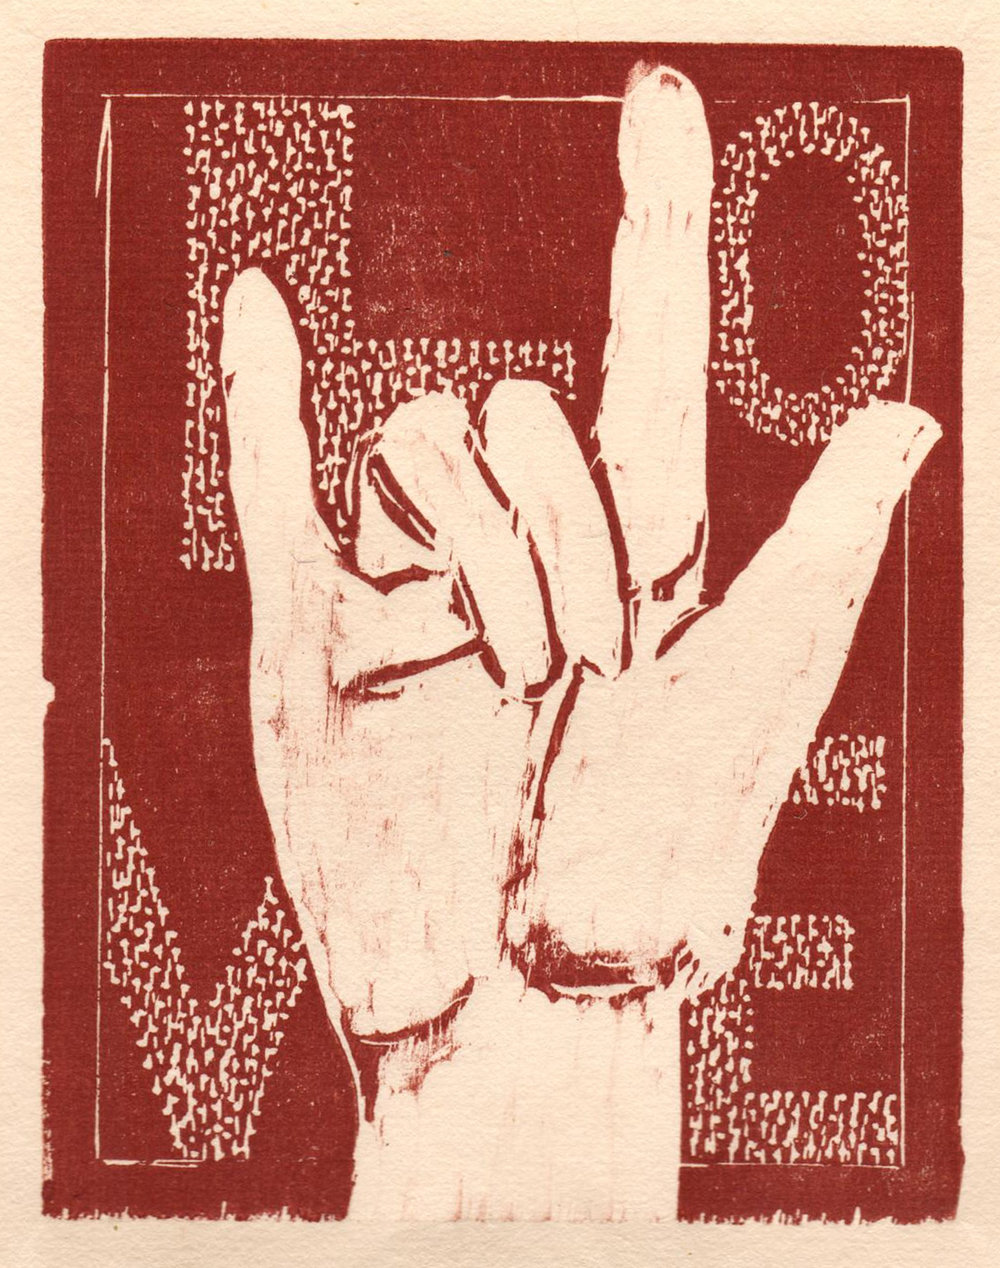 "'Helping Hands, Love', woodcut, 6.5"" x 5"", $80 unframed"